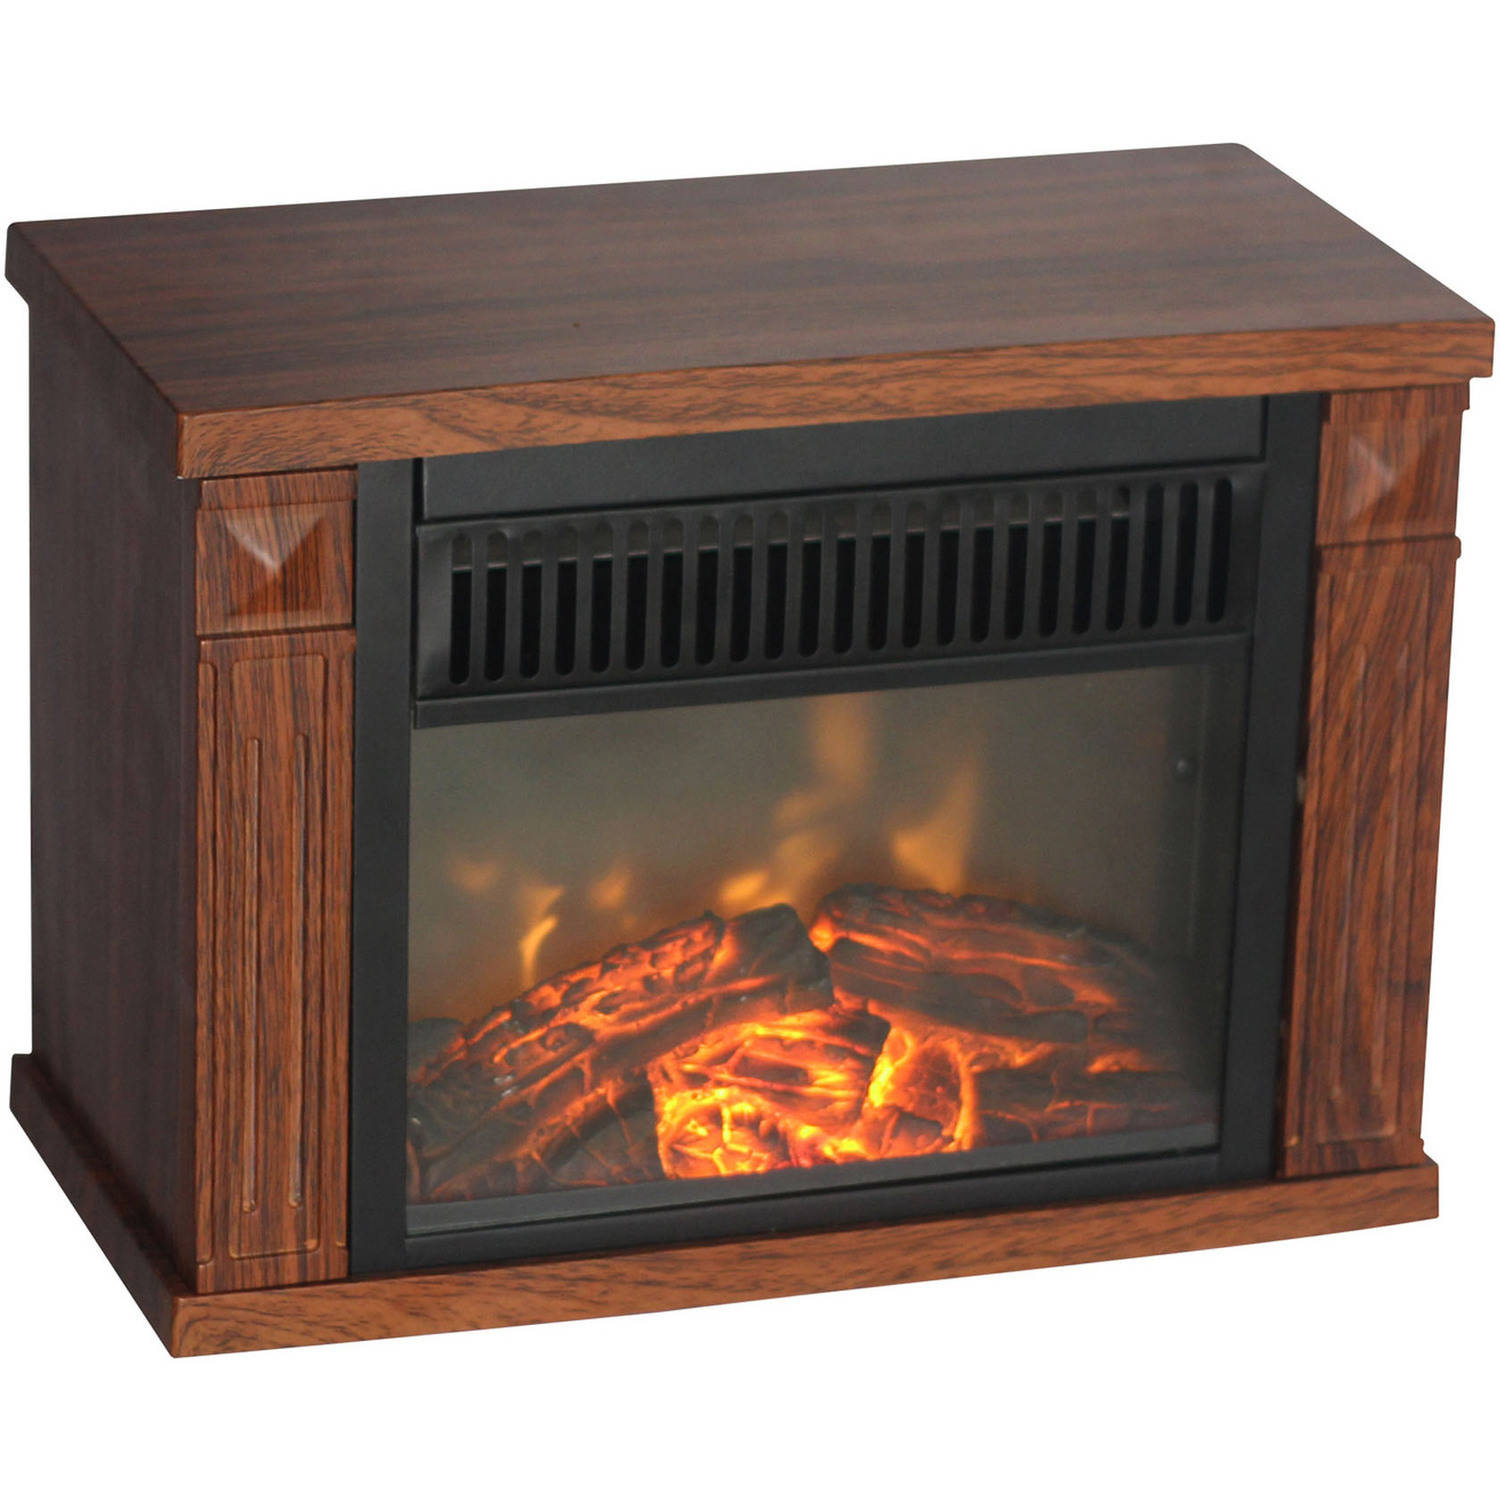 Comfort Glow Bookshelf Mini Fireplace, Wood Grain - Walmart.com